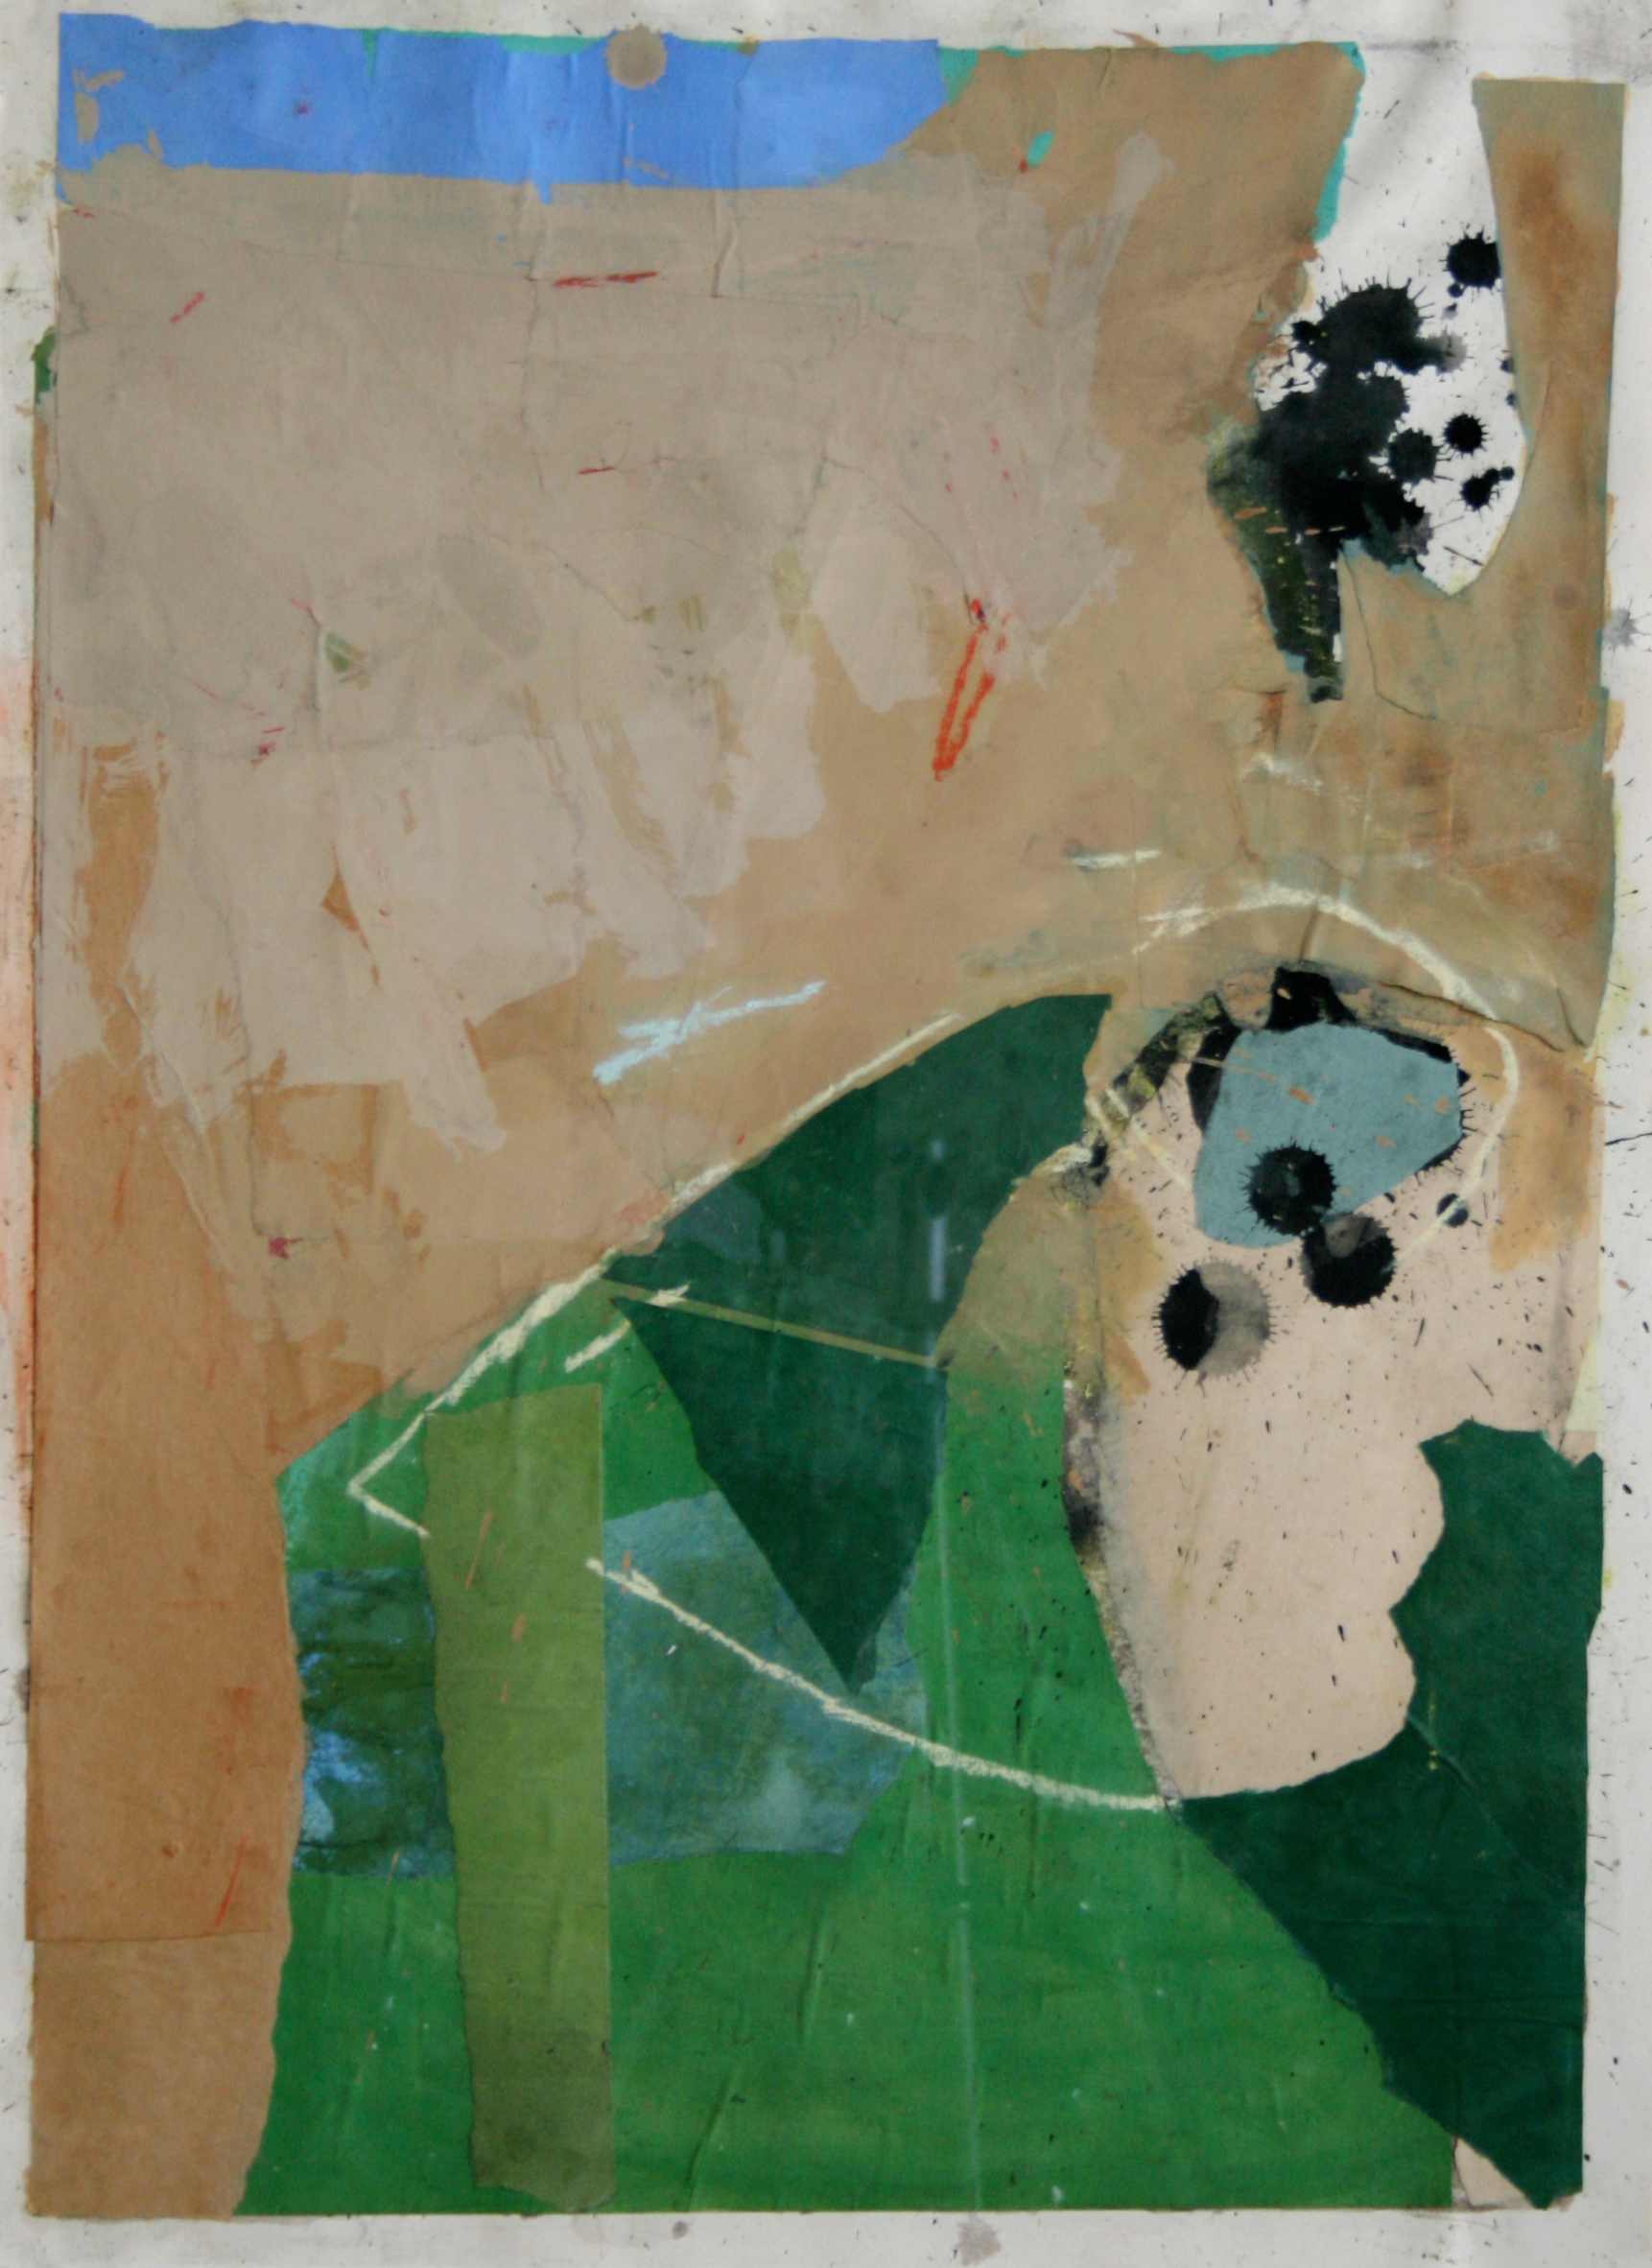 1982_Seals_of_Time_No22_collage_on_paper_29x21in_WPNF022.jpg